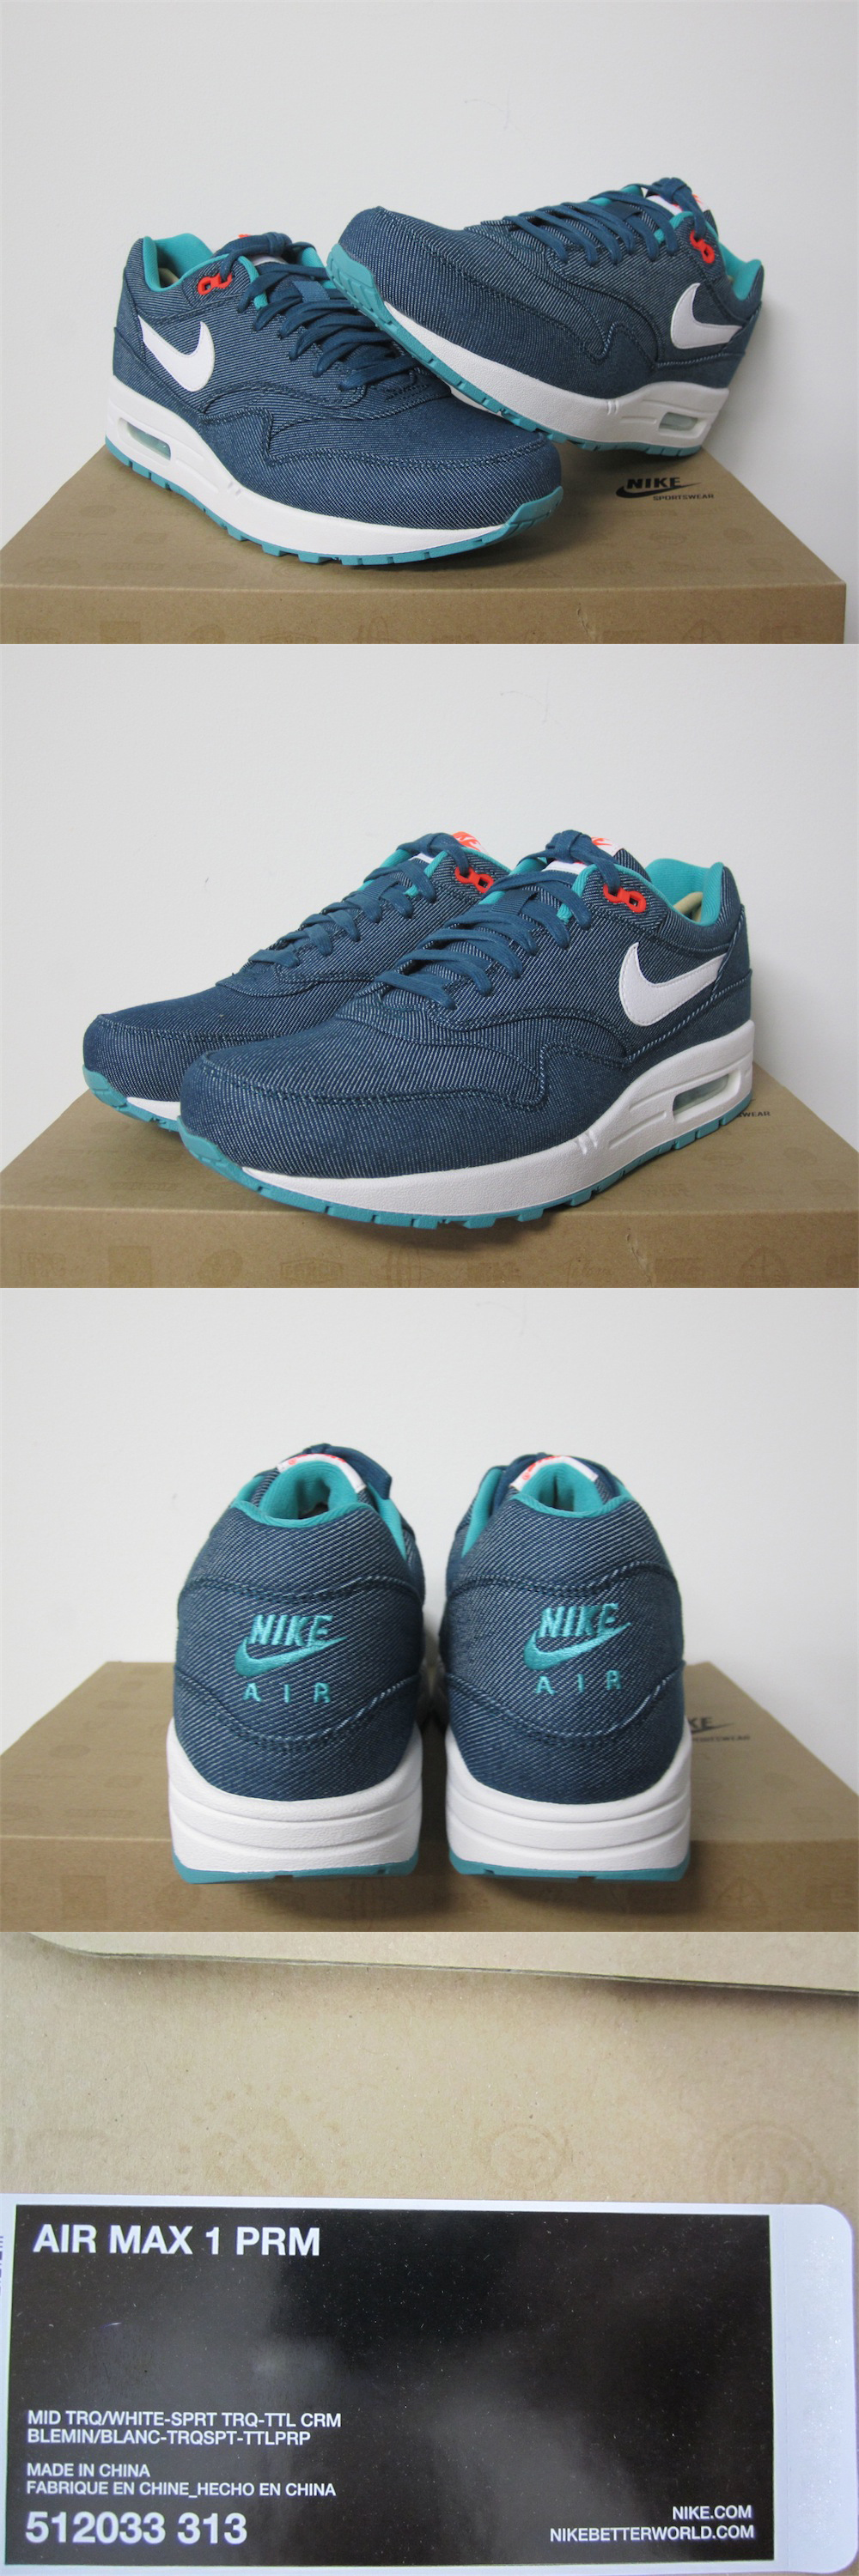 5d33fb3eac3 Nike Air Max 1 Premium Turquoise Denim White DS Sz 9 New 512033 313 ...